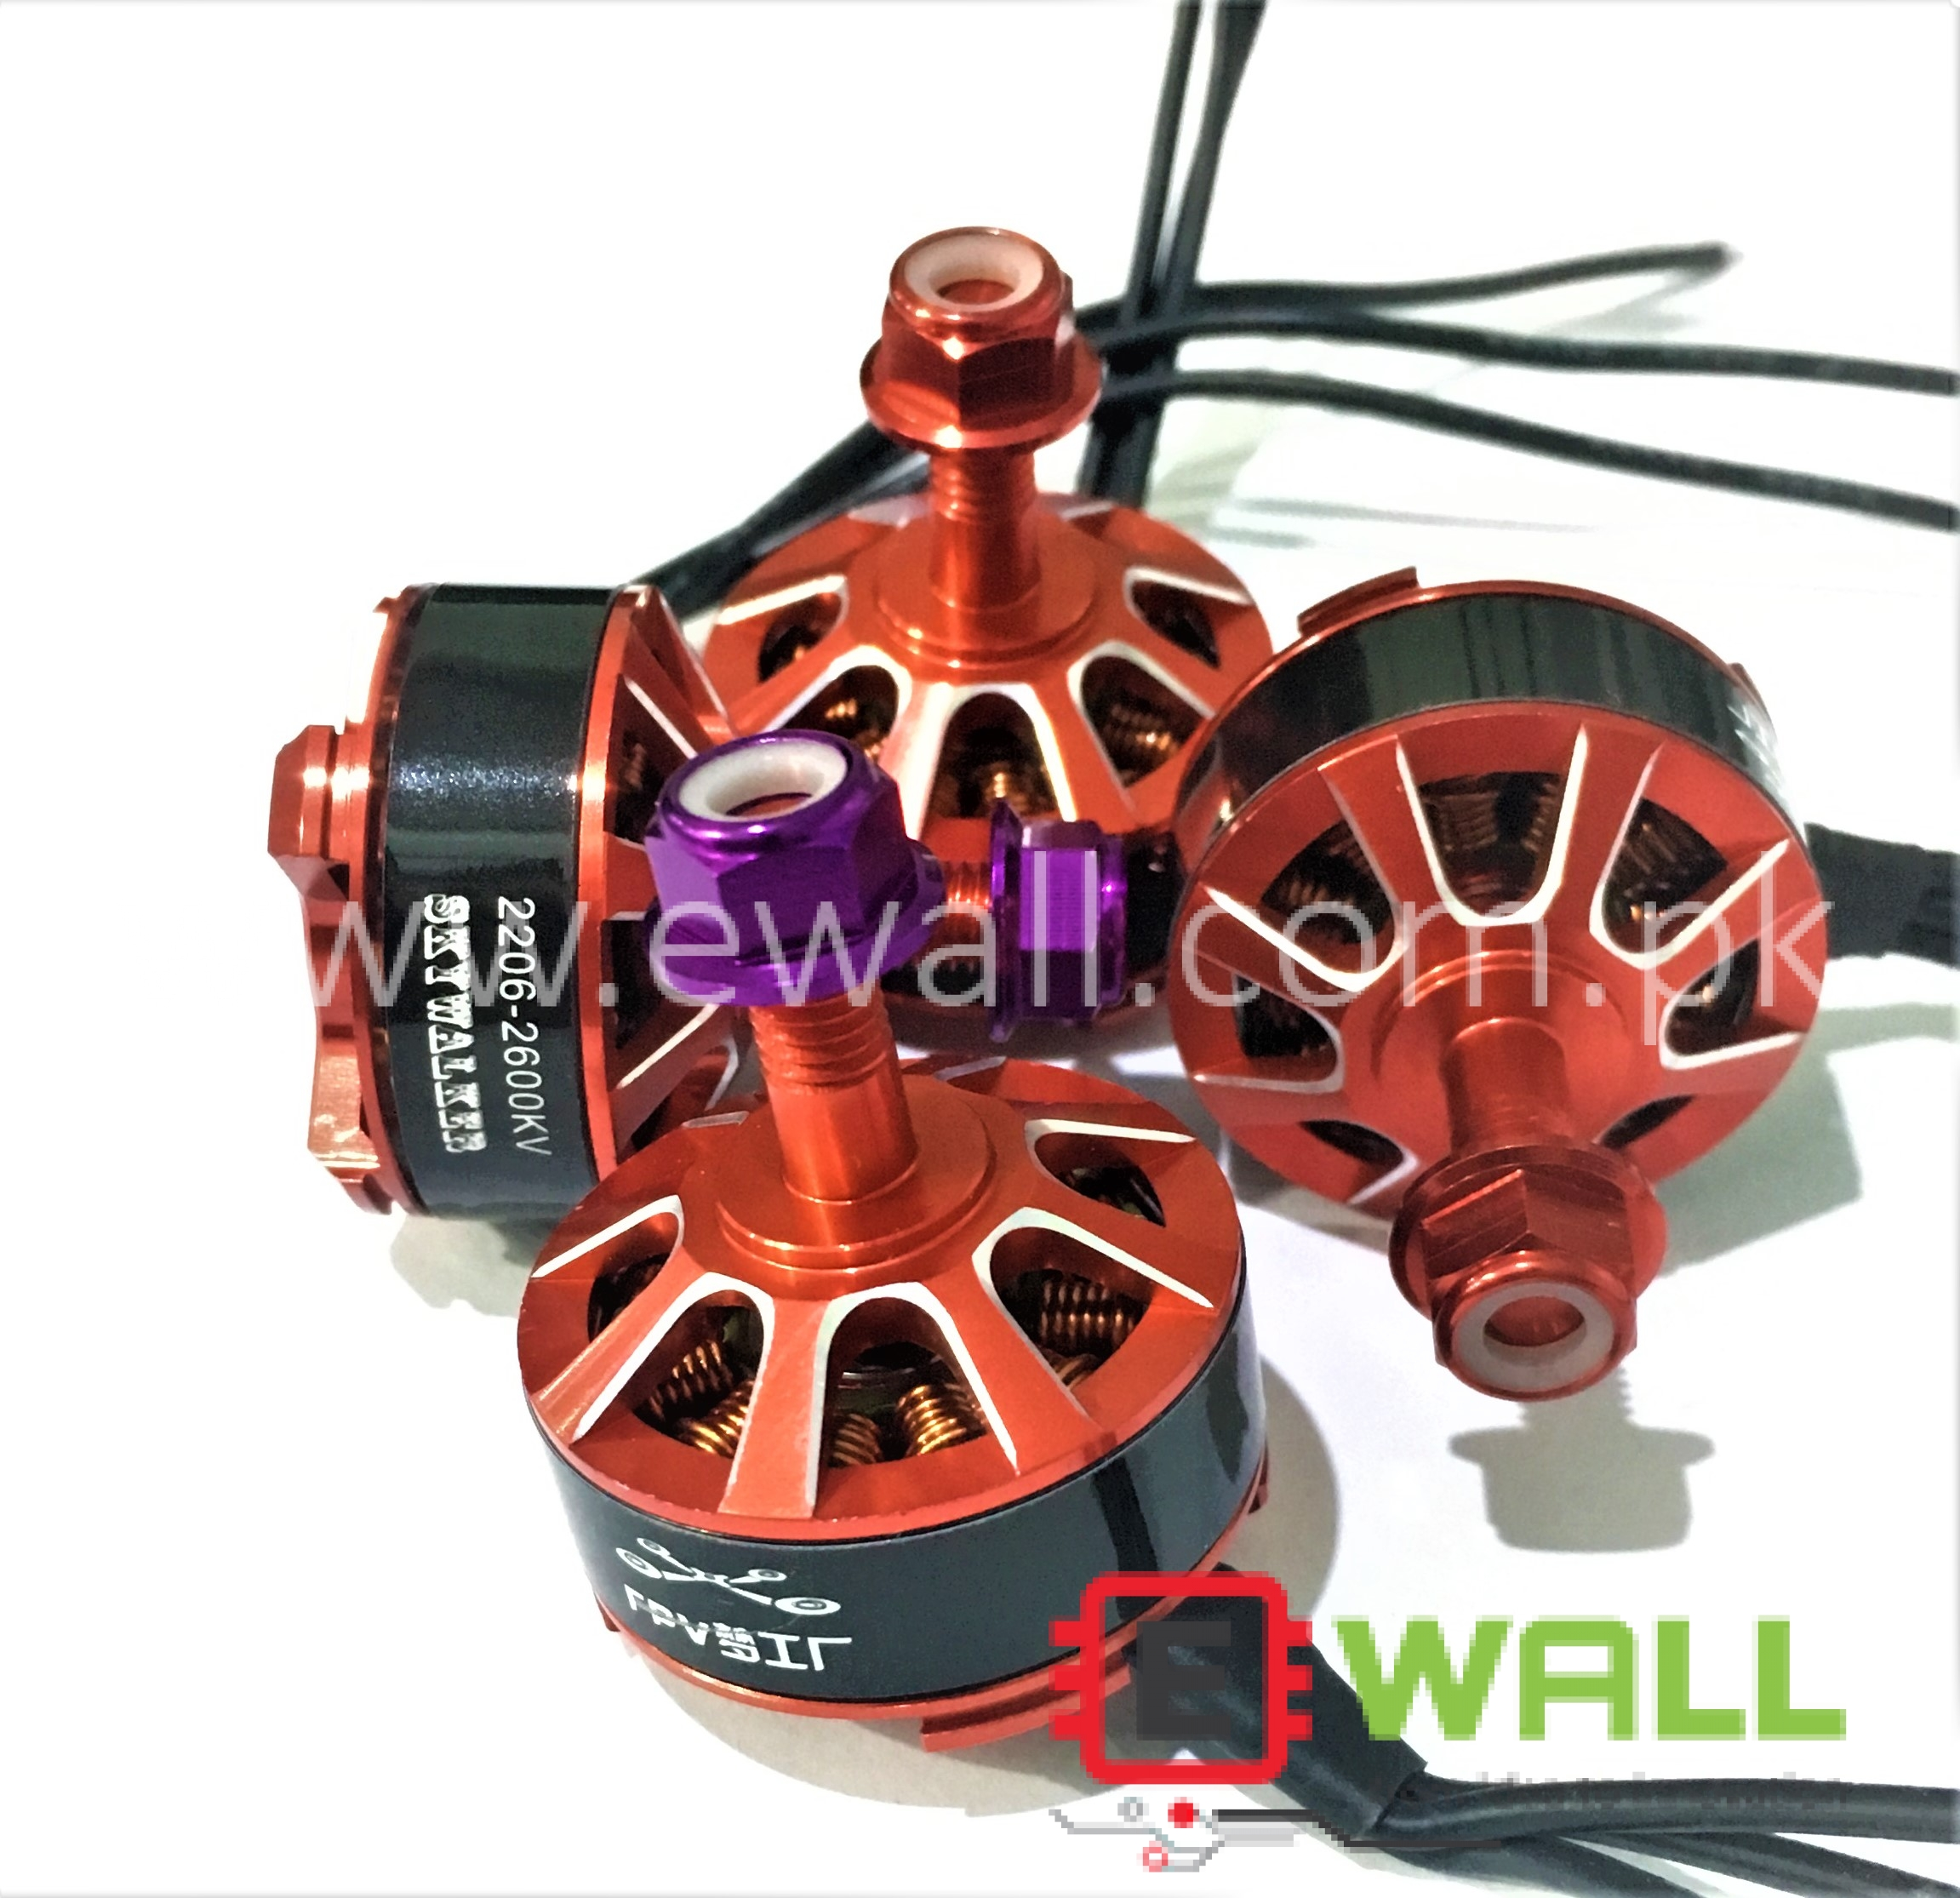 (4pcs set) Crossing Machine RC 2206 2600KV Motor Brushless Skywalker for FPV Racing Drone ( 2CCW+2CW)